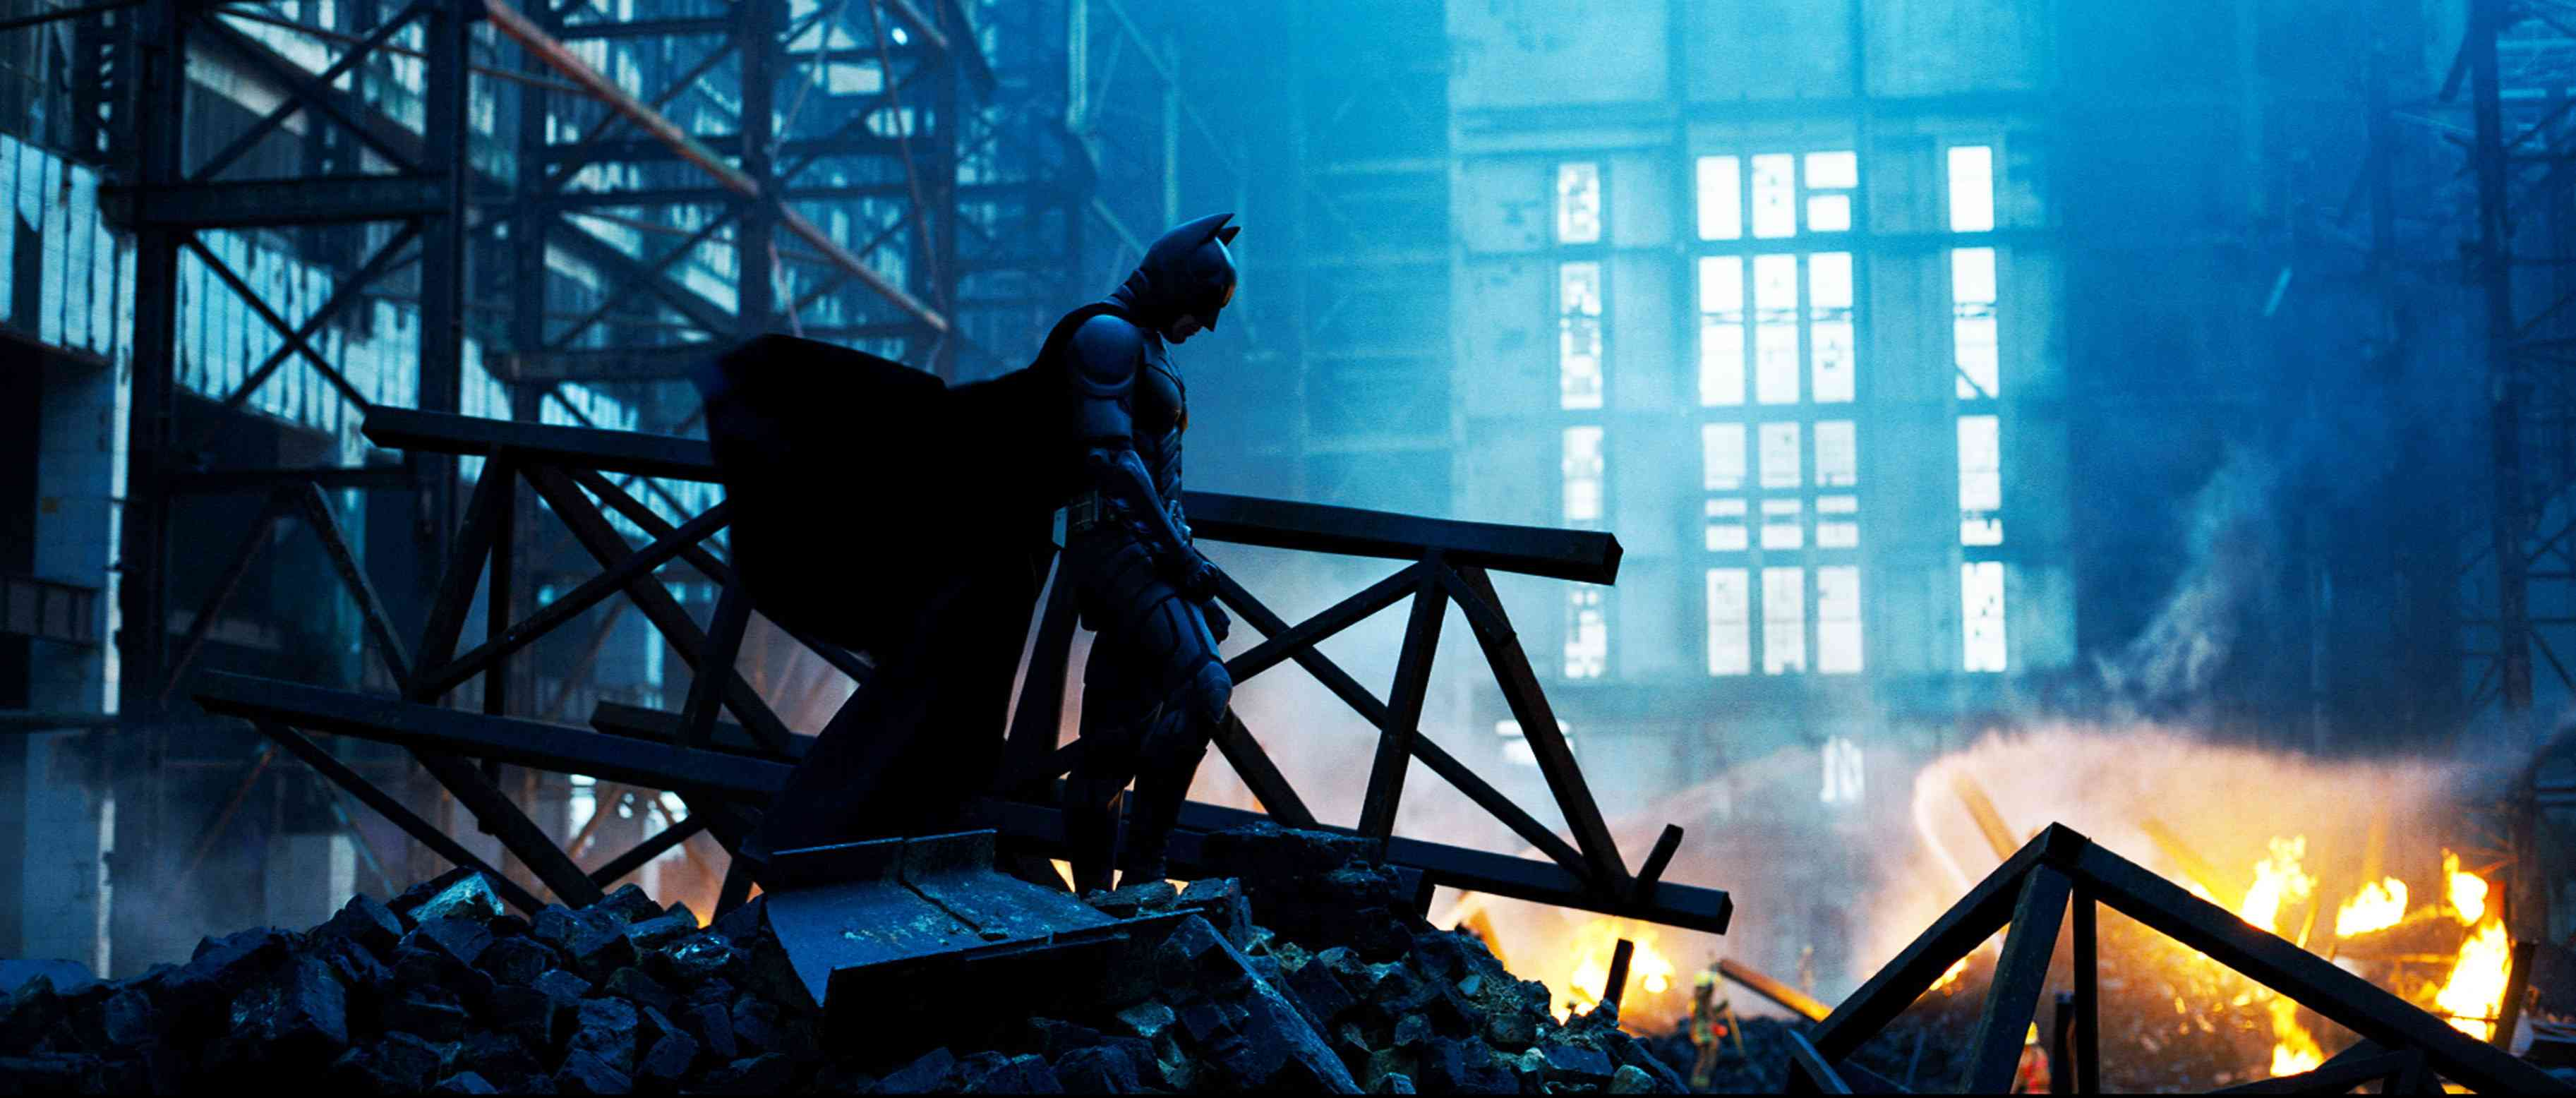 special review the dark knight an essay on ethics and the introductions out